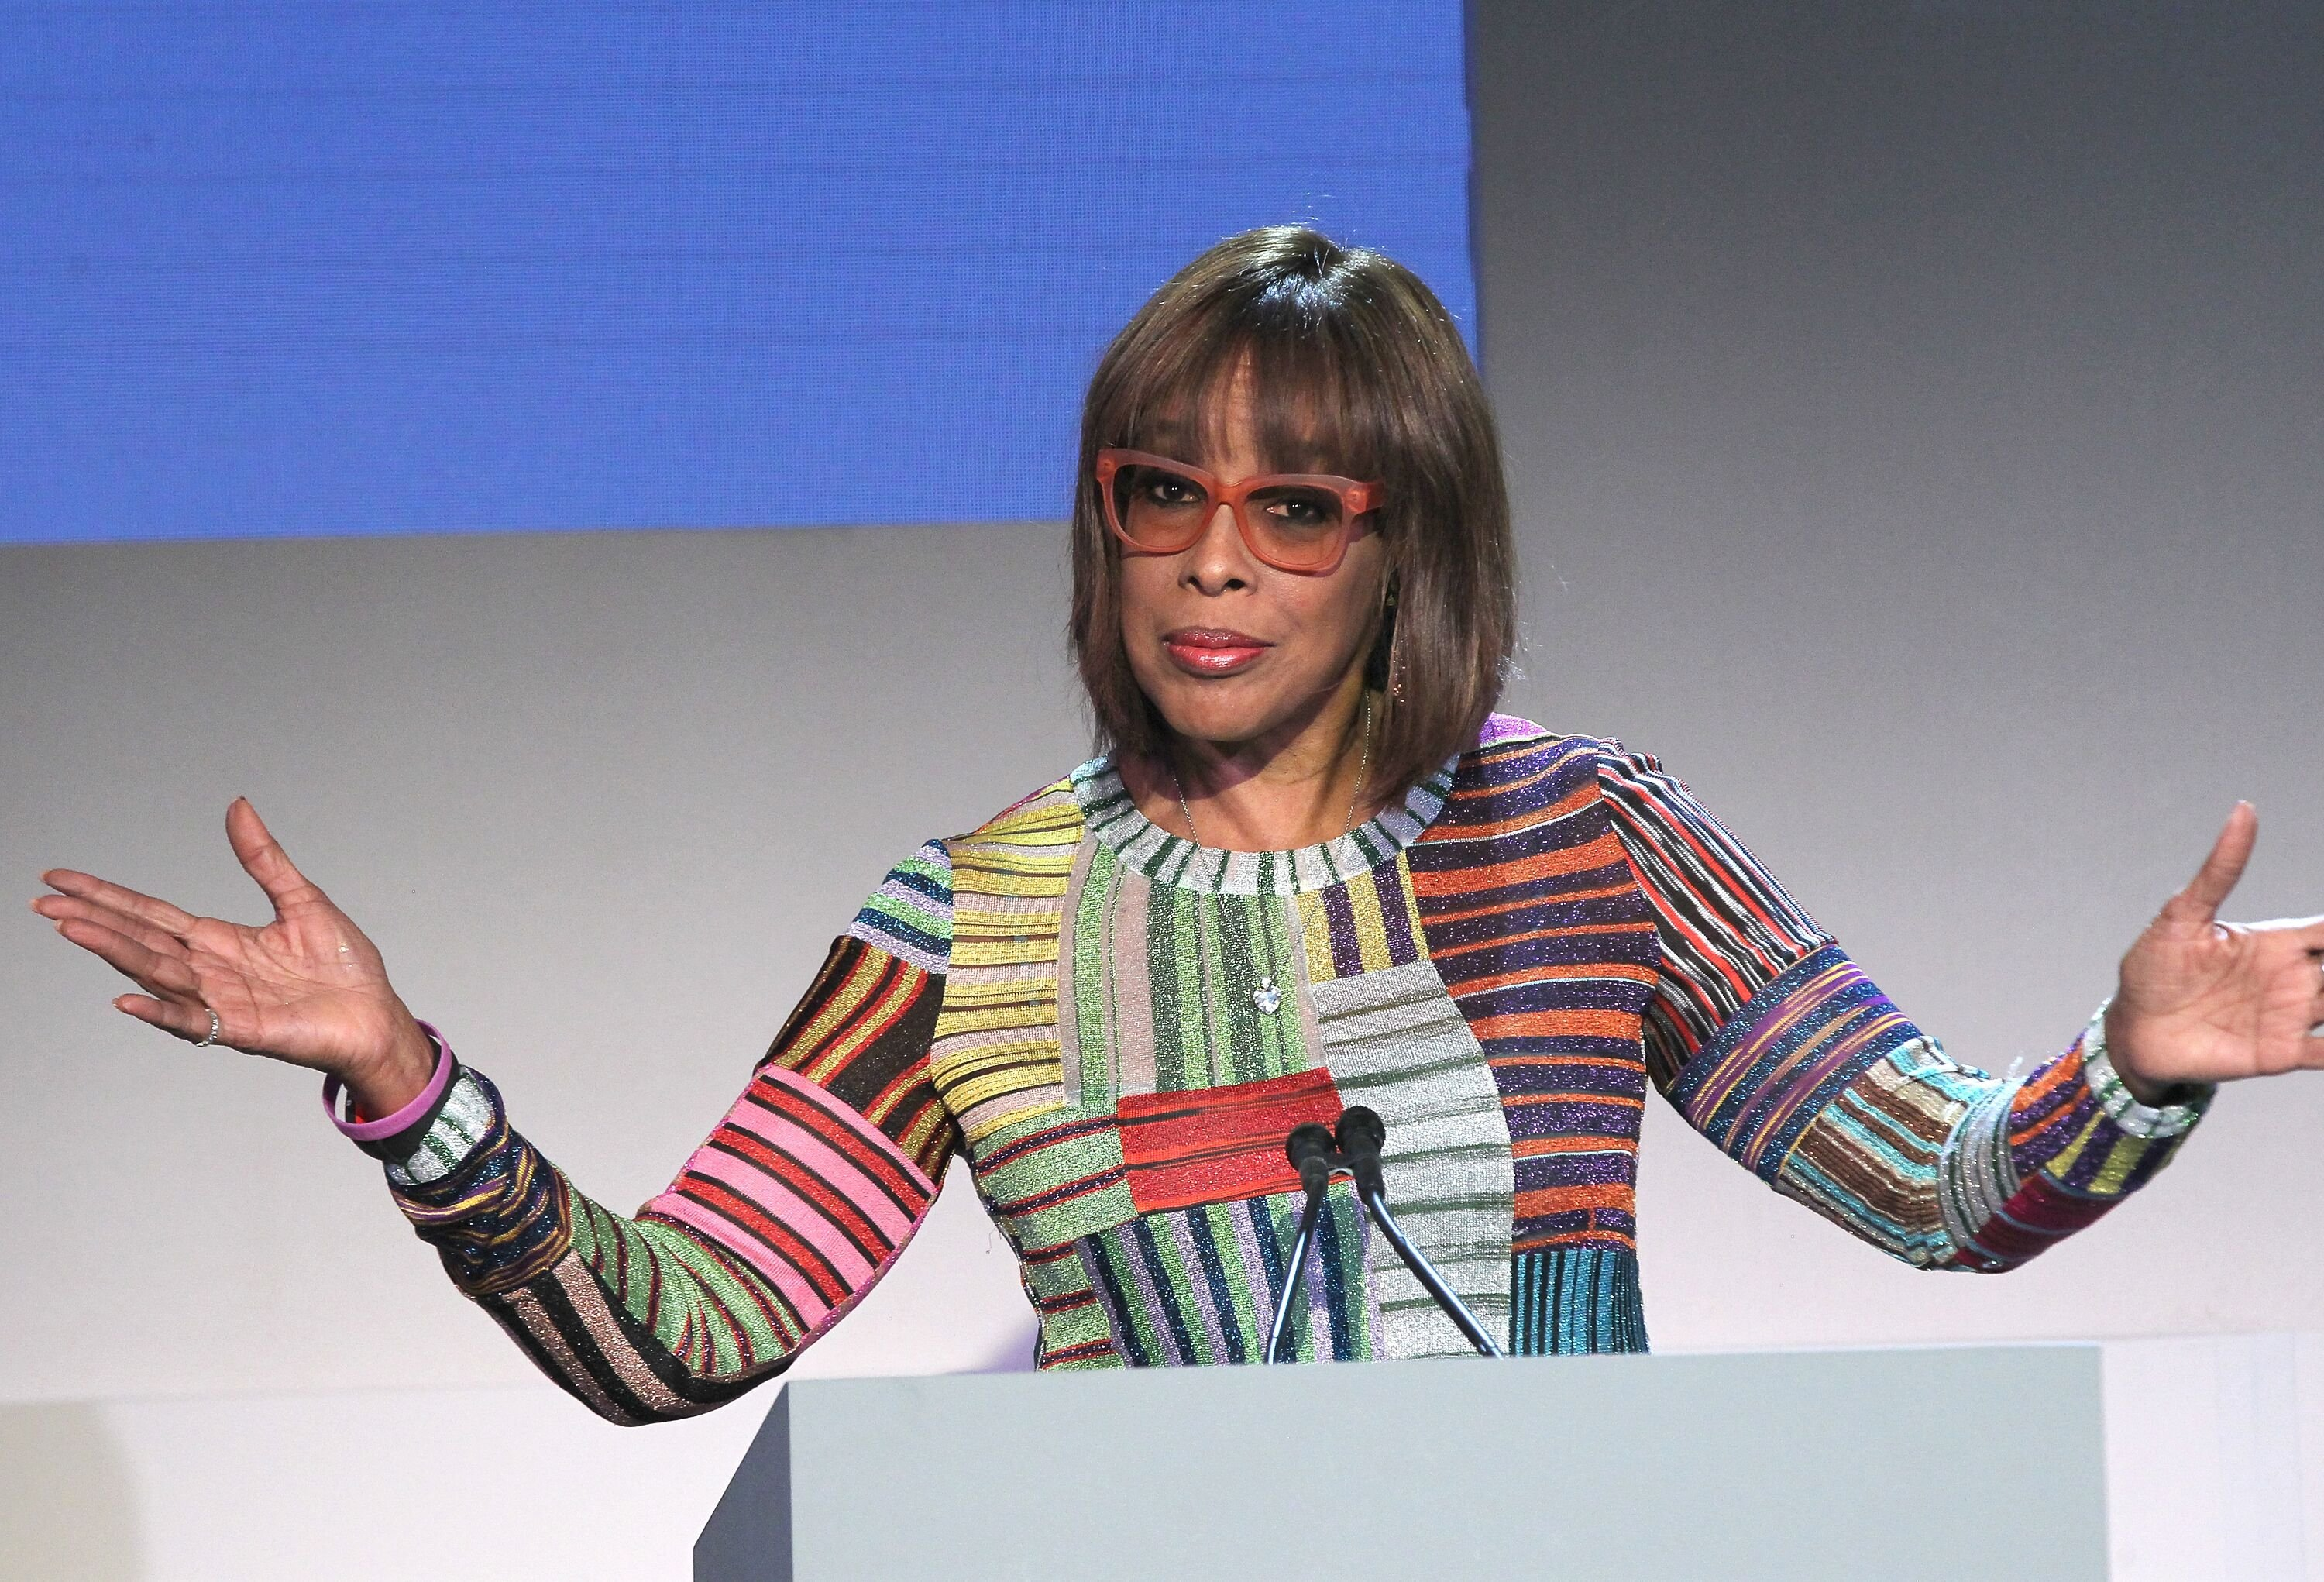 Gayle King speaks onstage at the WSJ. Magazine 2018 Innovator Awards Sponsored By Harry Winston, FlexJet & Barneys New York - Inside at MOMA on November 7, 2018 | Photo: Getty Images